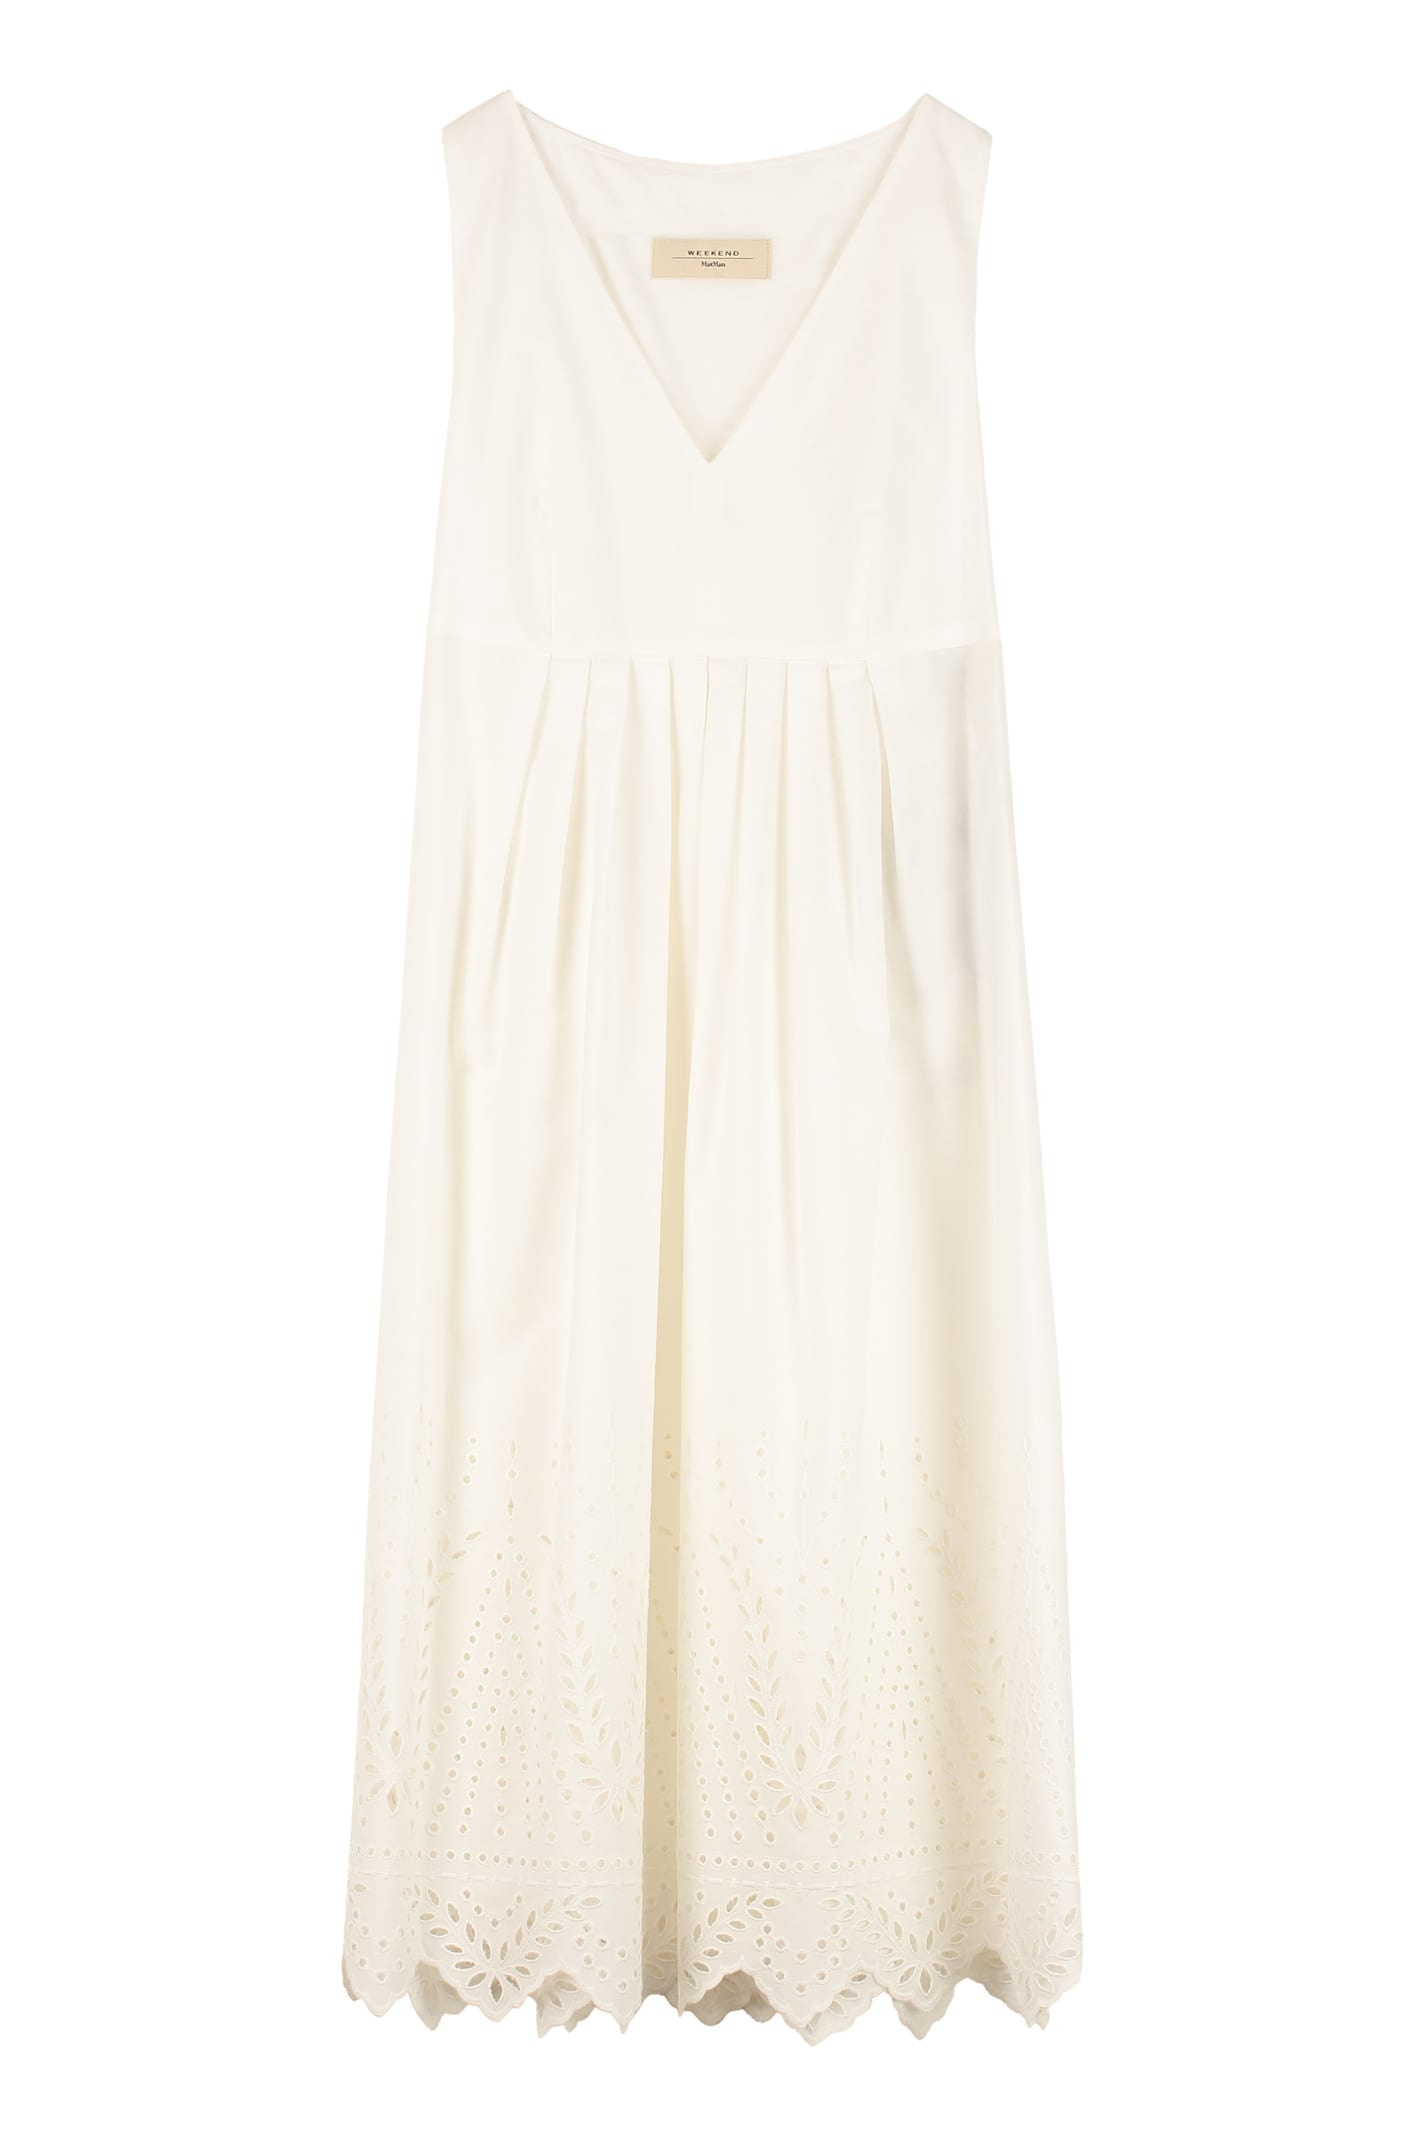 Buy Weekend Max Mara Anglaise Inserts Renna Cotton Maxi Dress online, shop Weekend Max Mara with free shipping